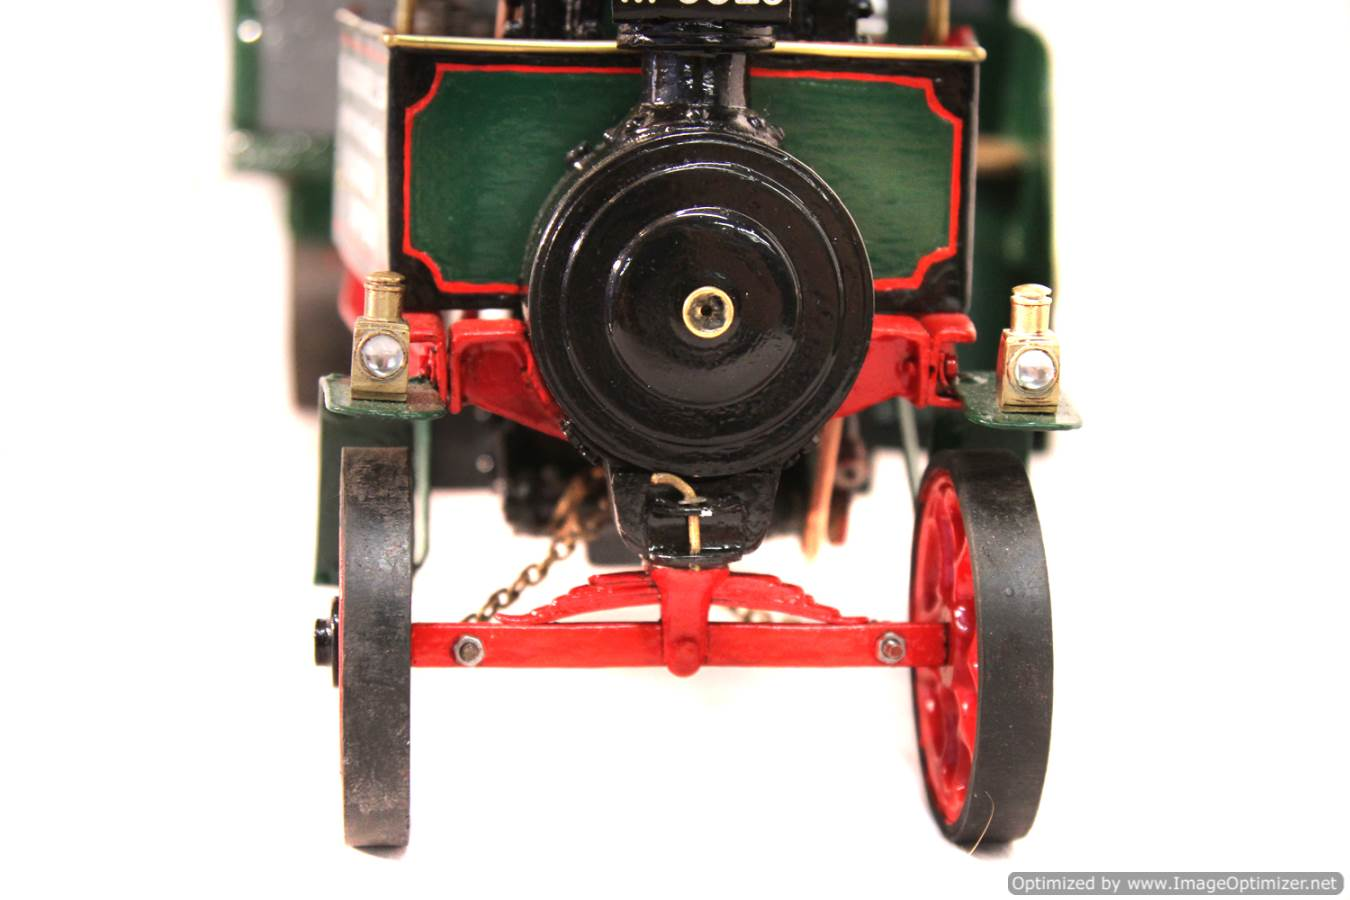 test 1 inch Foden Lorry Live Steam Locomotive for sale 24 Optimized